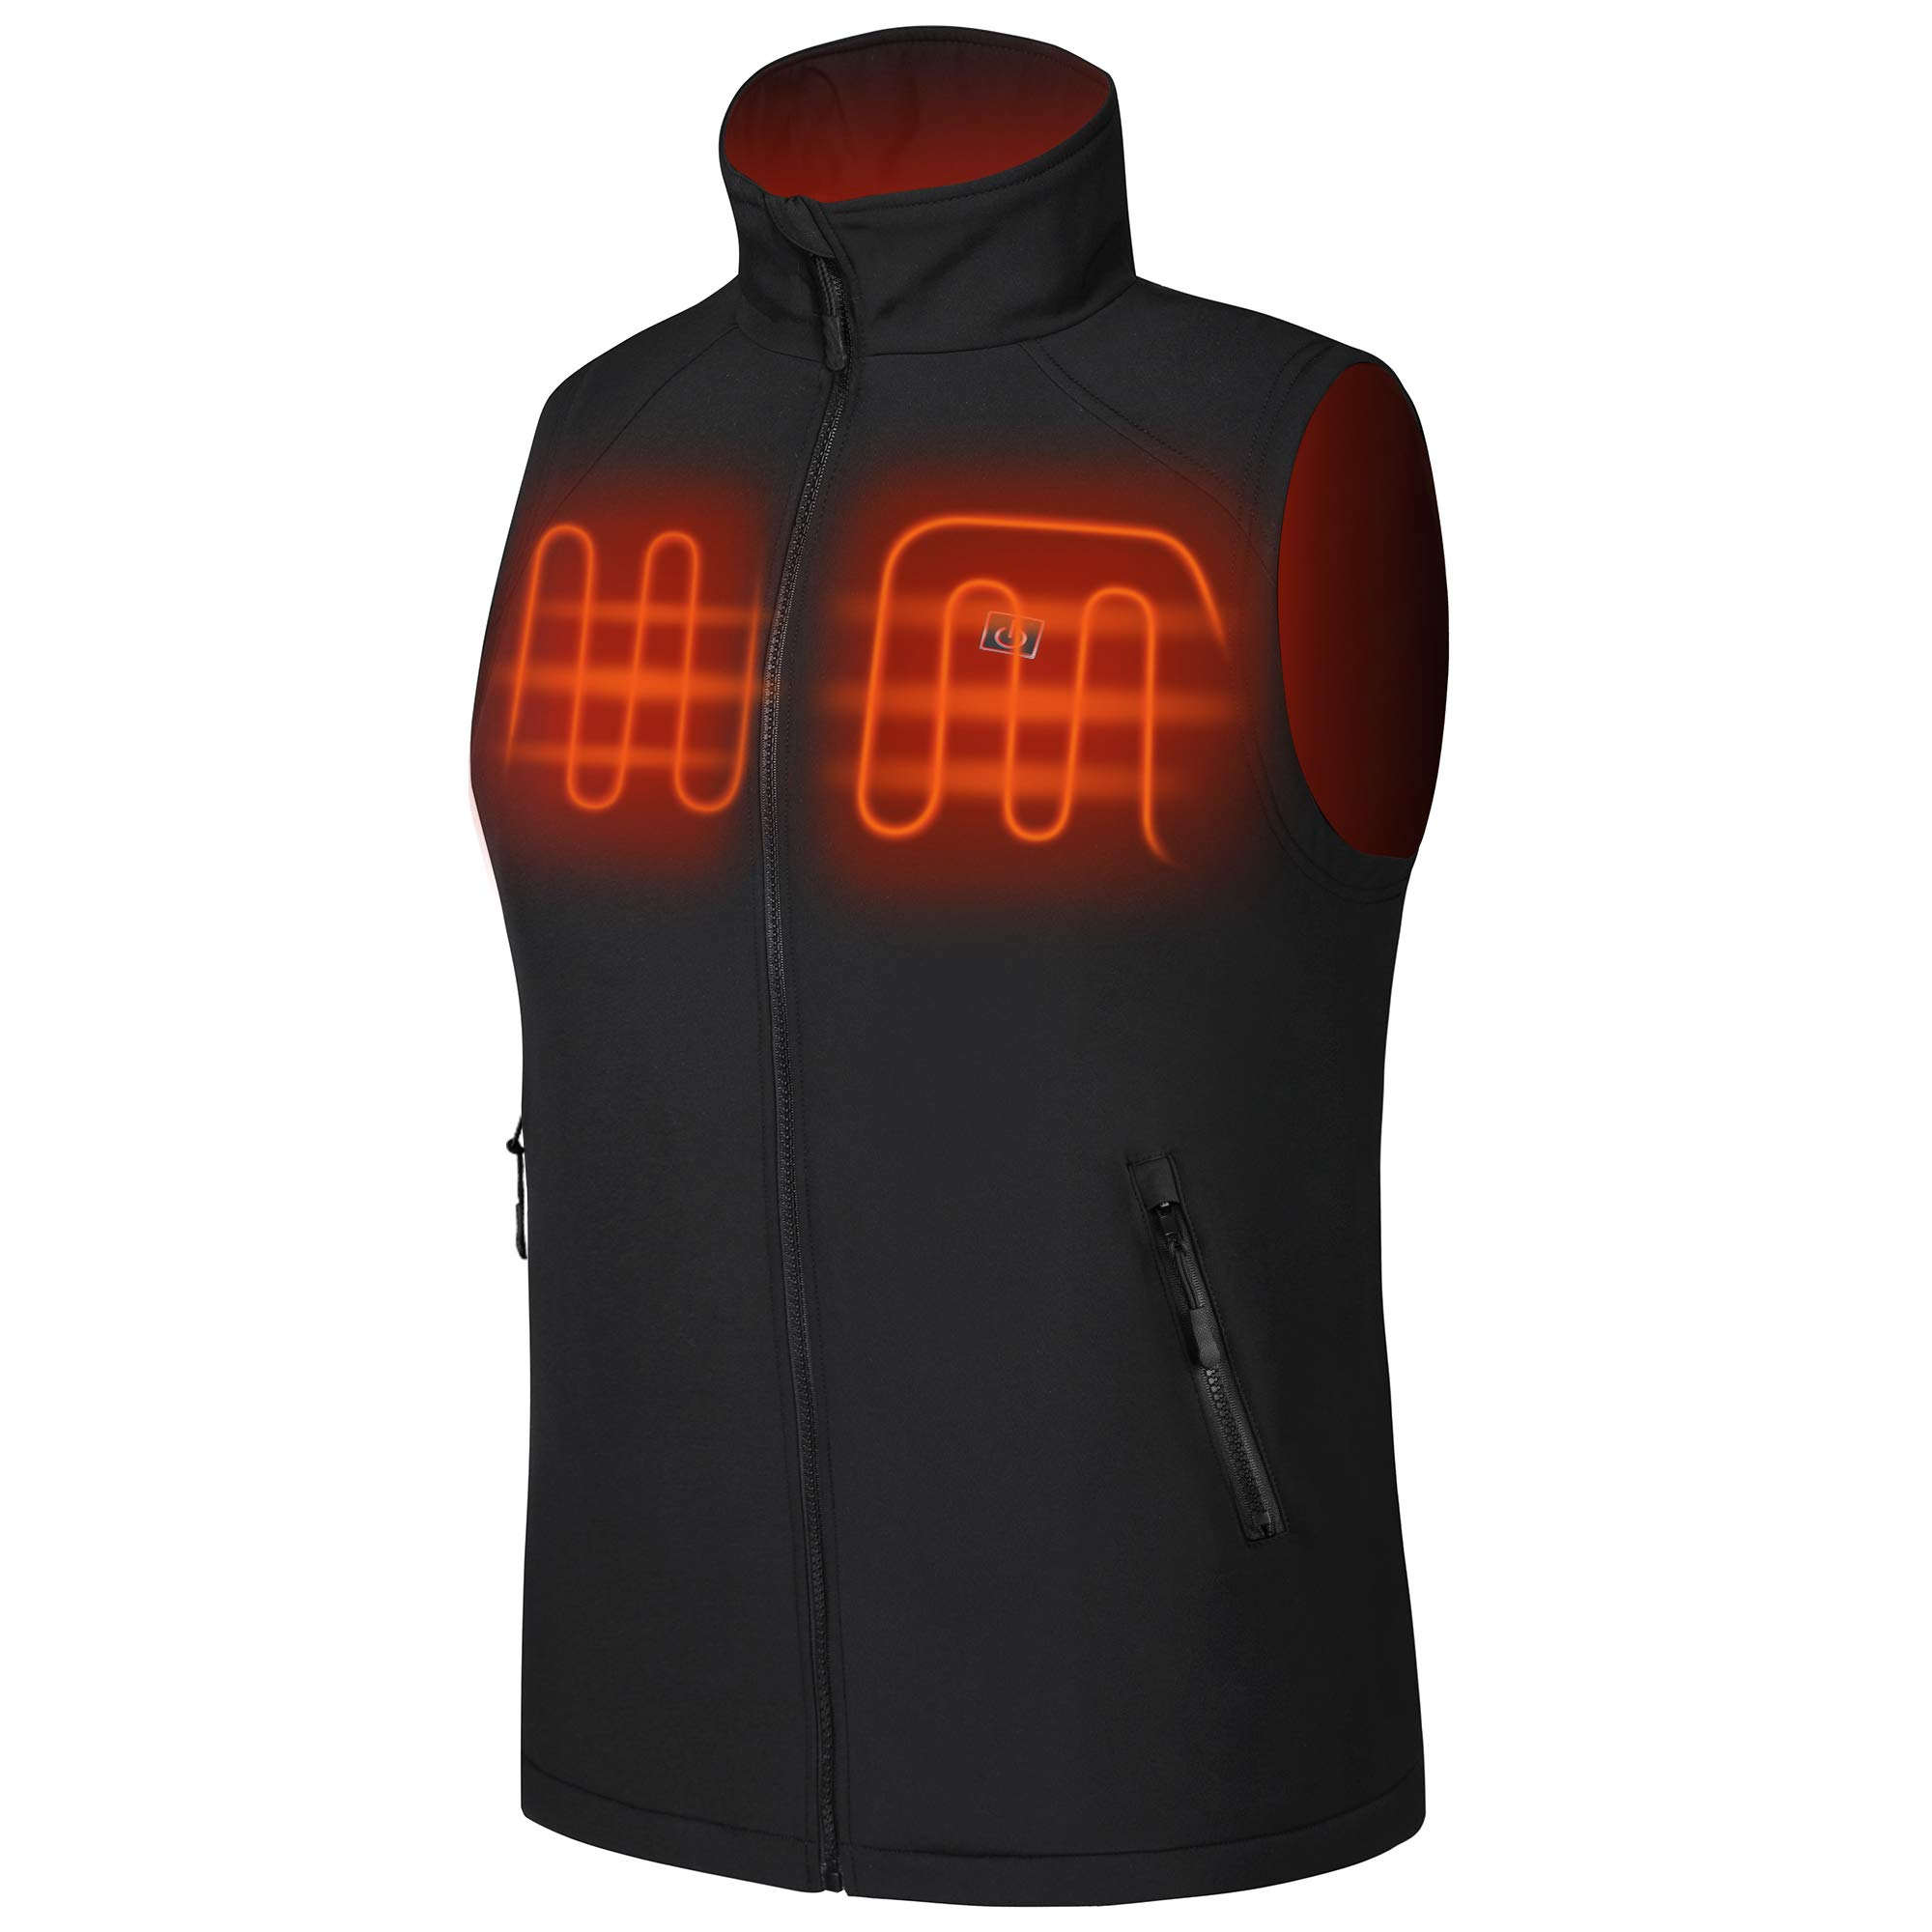 NORA TWIPS Heated Vest Lightweight and Water&Wind Resistant for Men Black by NORA TWIPS